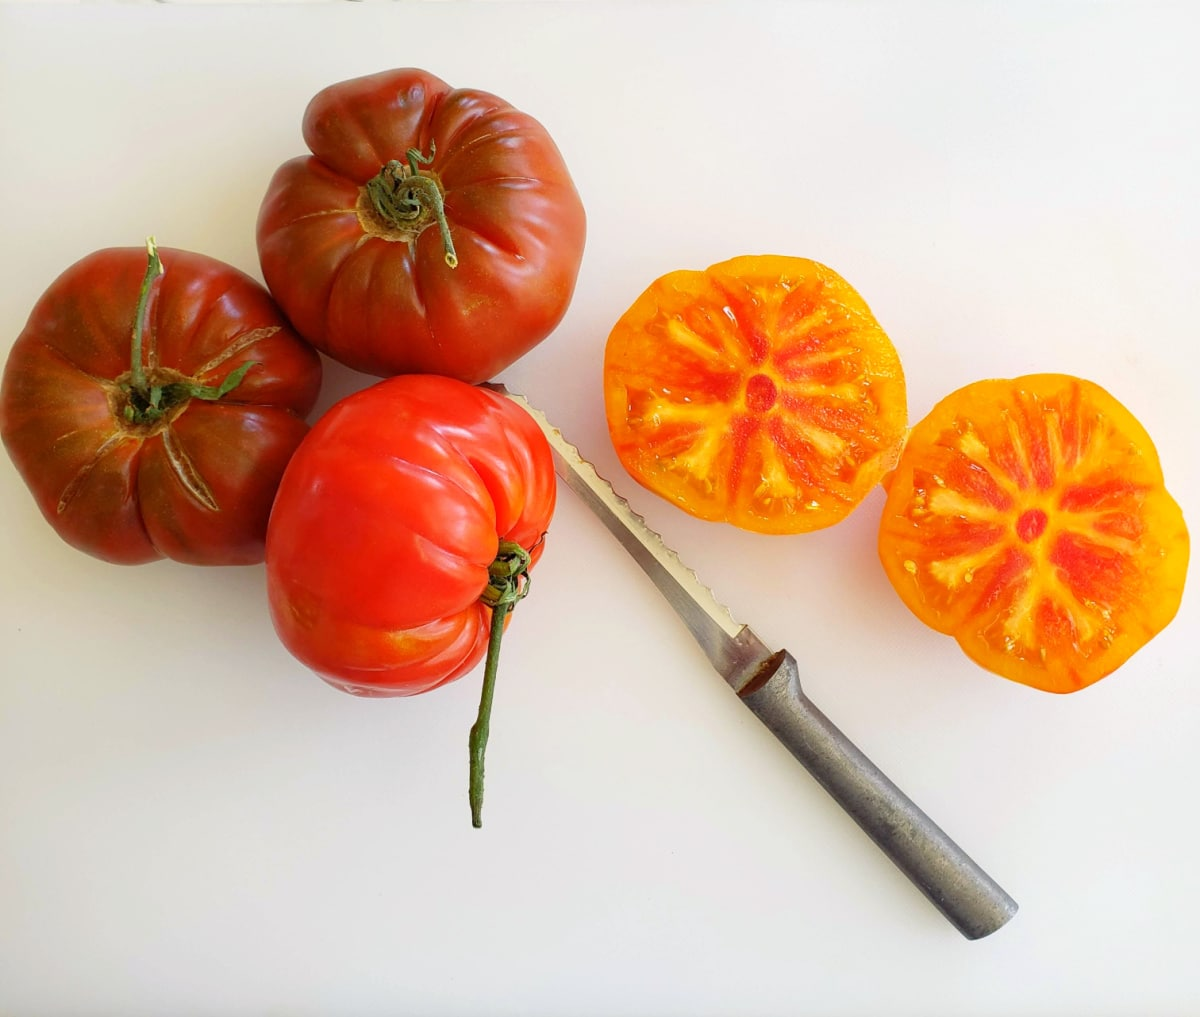 Heirloom tomatoes on a white cutting board with a knife